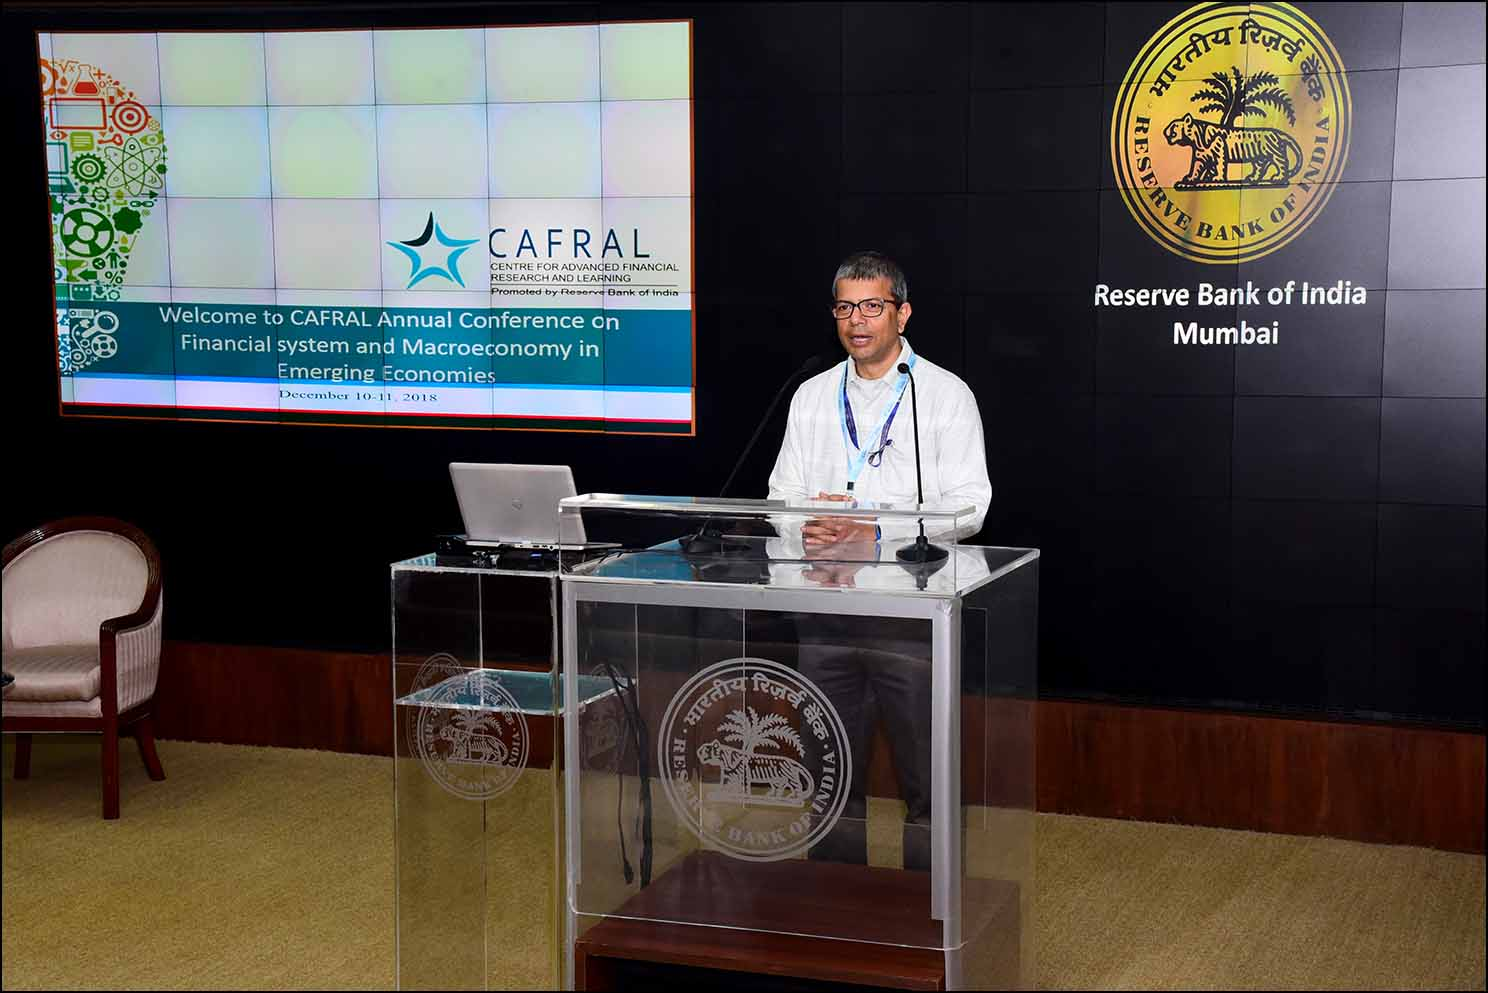 Photos from the CAFRAL conference on Financial system and Macroeconomy in Emerging Economies